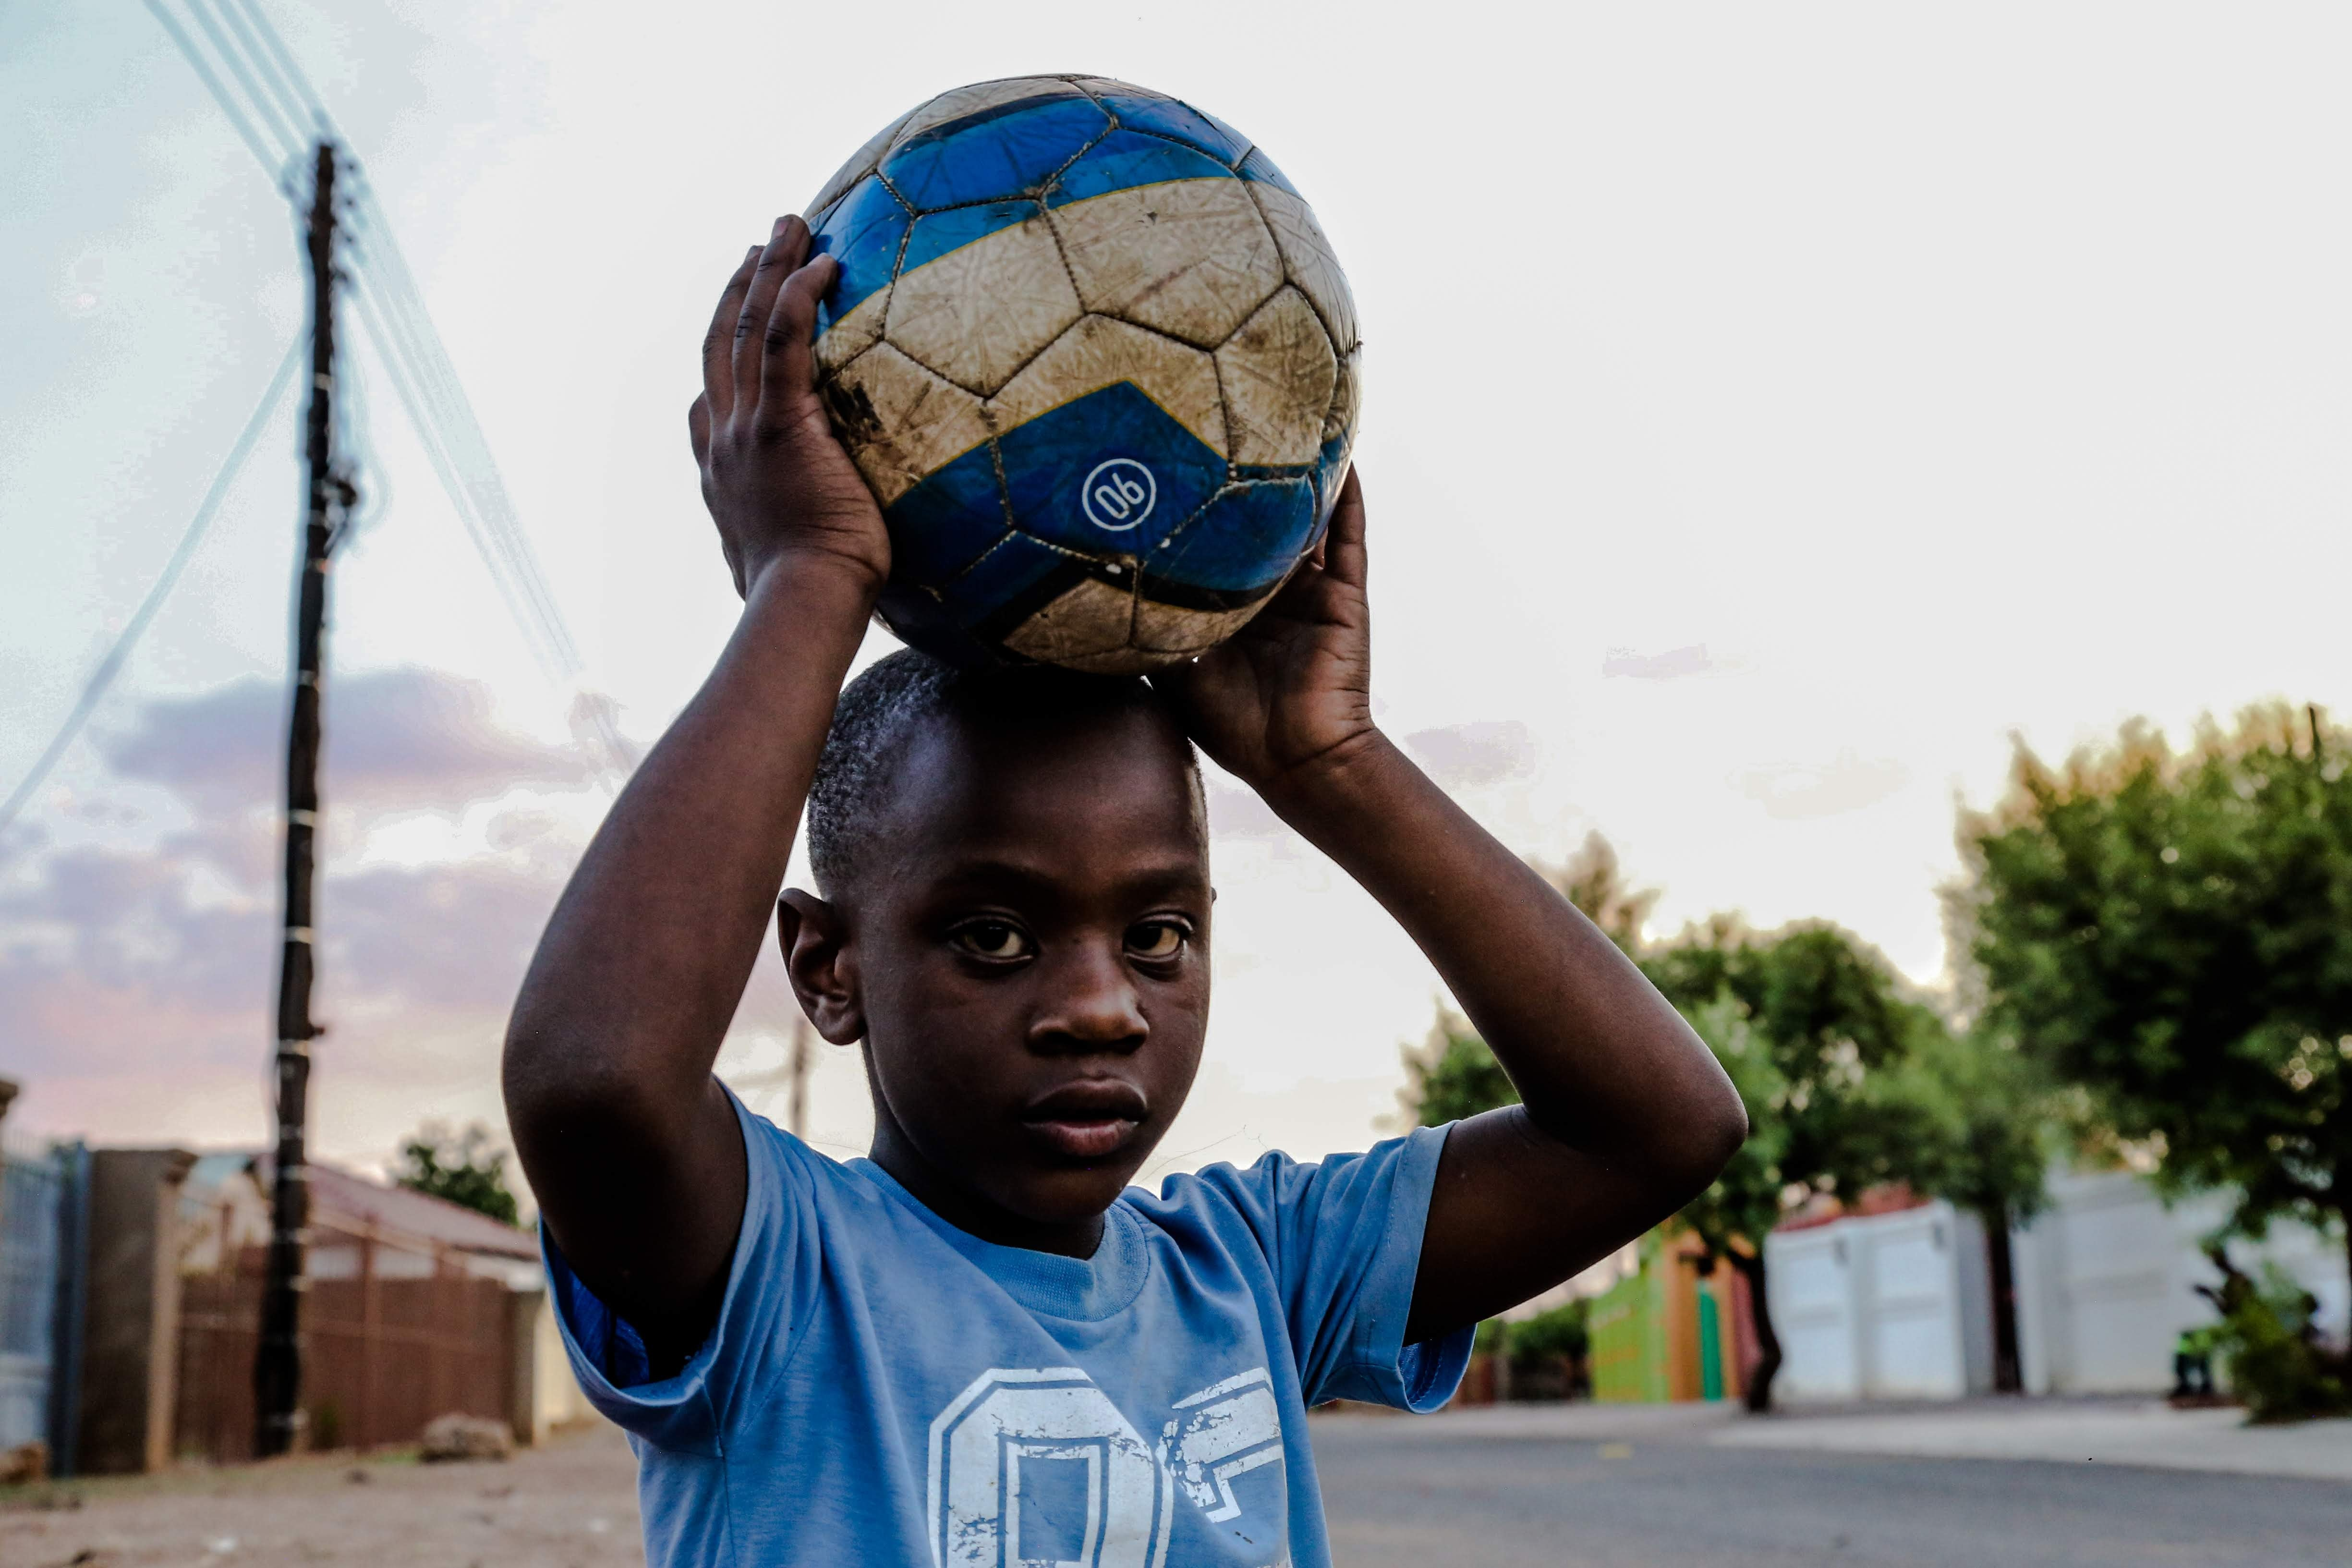 boy-carrying-soccer-ball-on-his-head-1866654